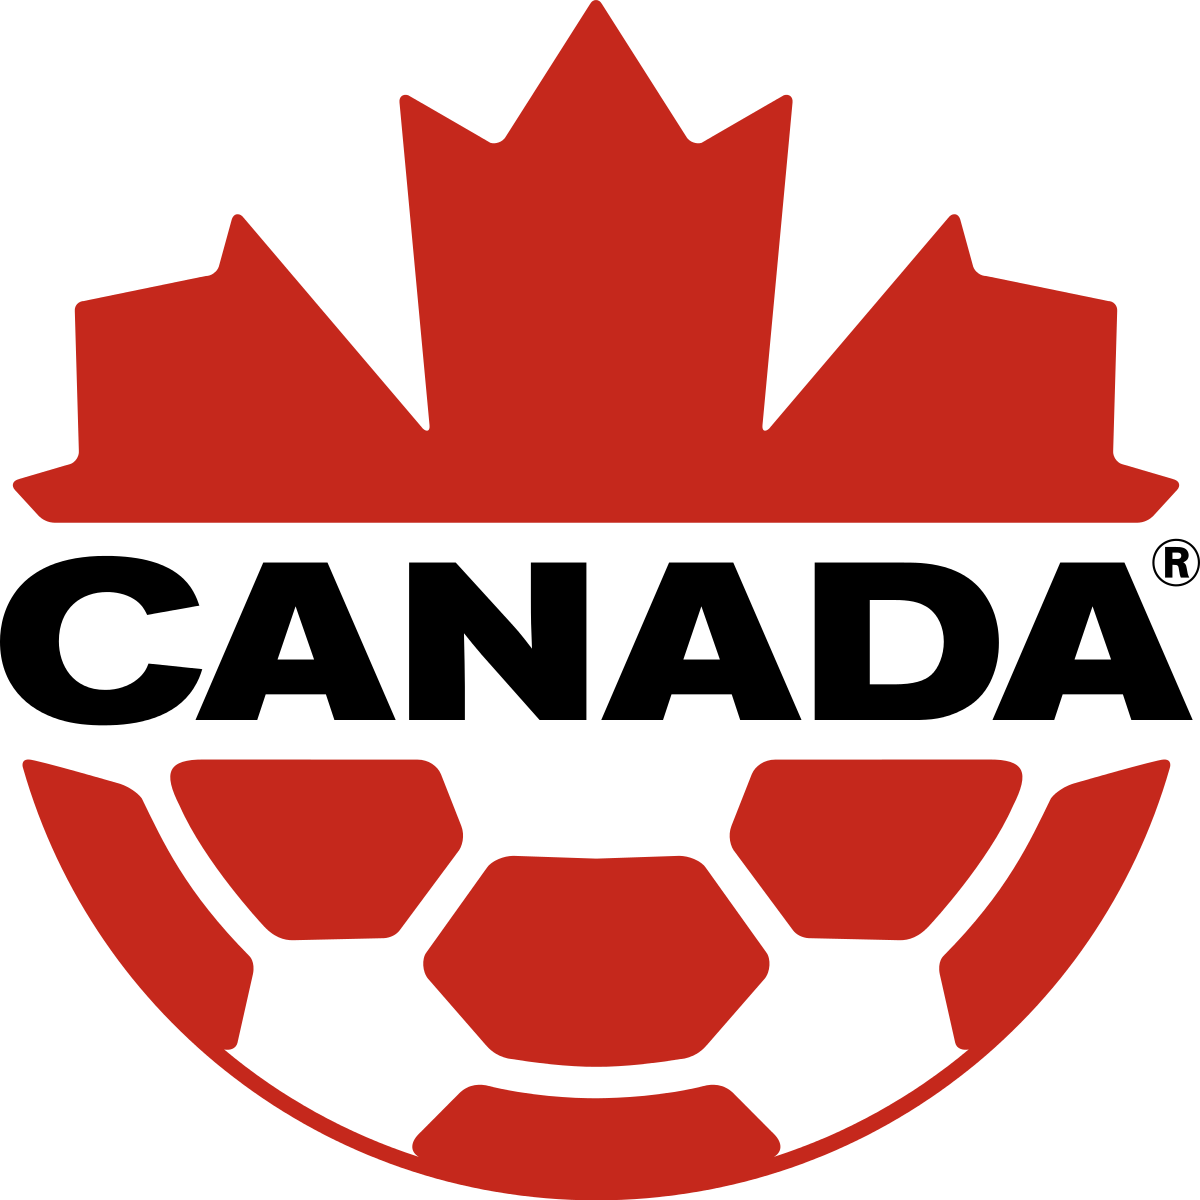 The Canadian Soccer Association